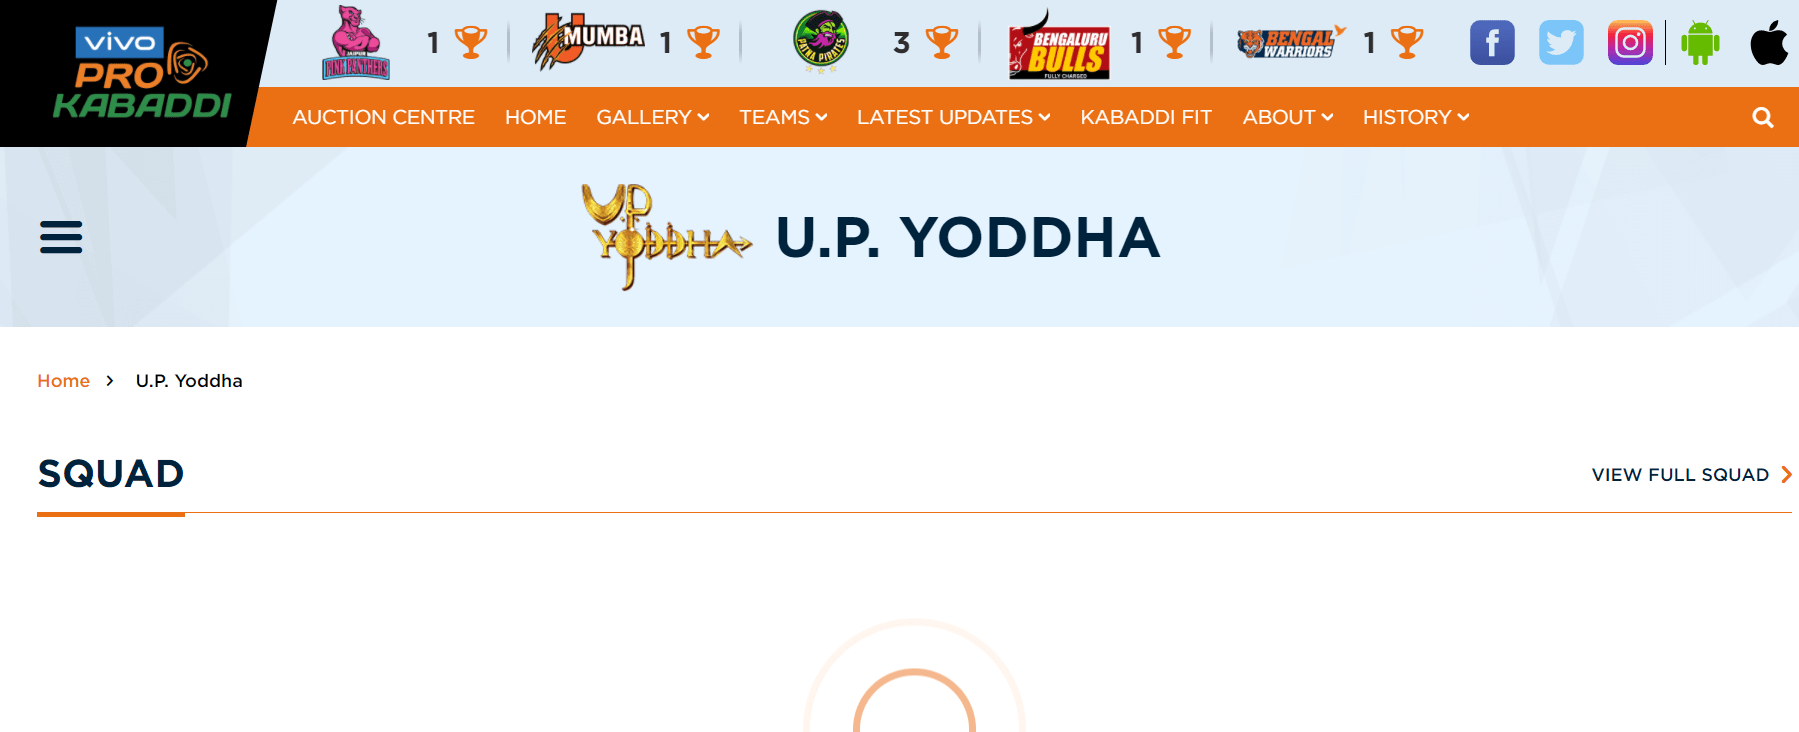 UP Yoddha Team complete squad